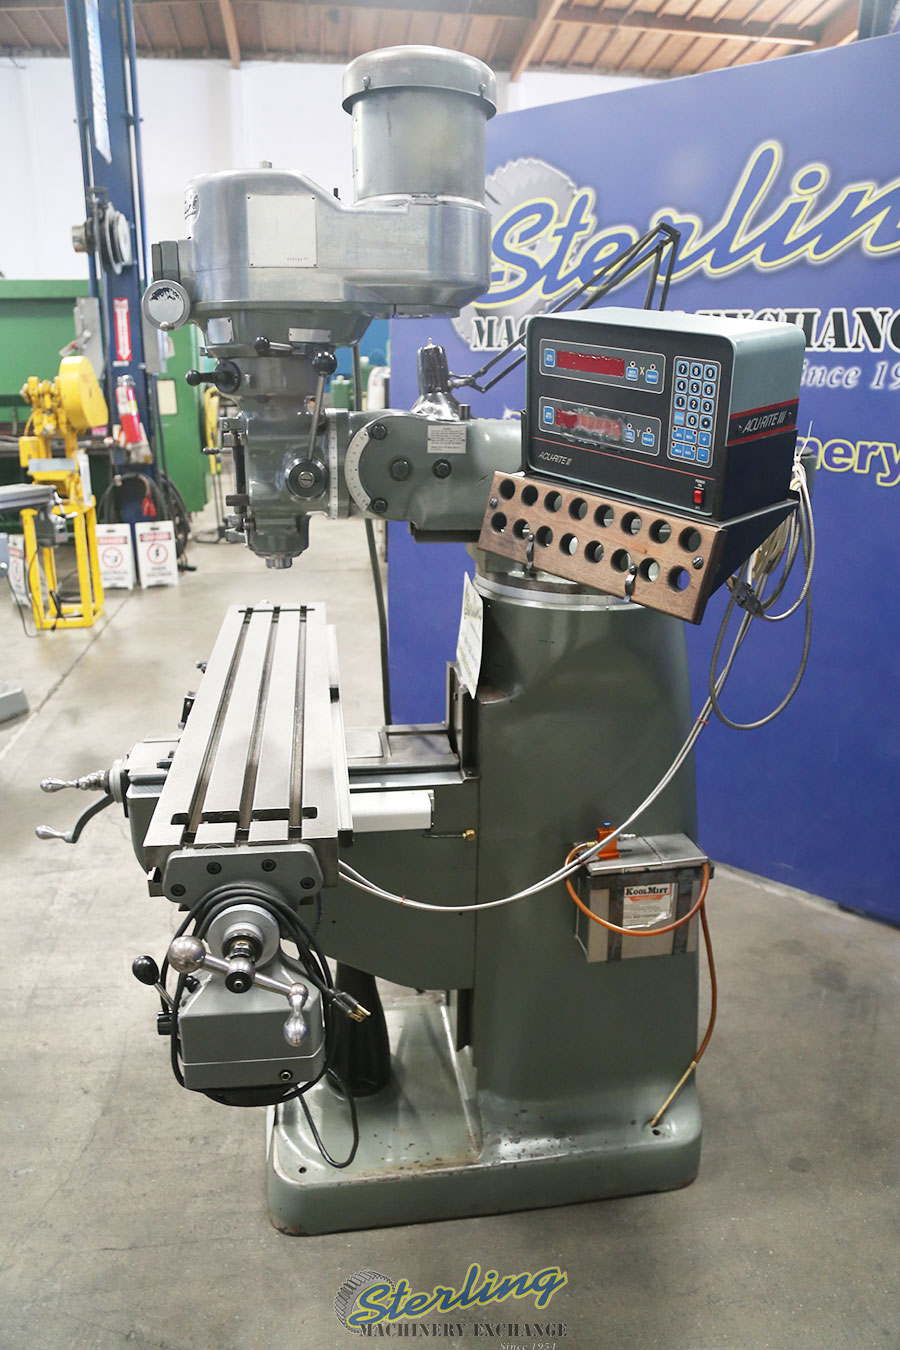 Used Bridgeport Variable Speed Vertical Milling Vertical